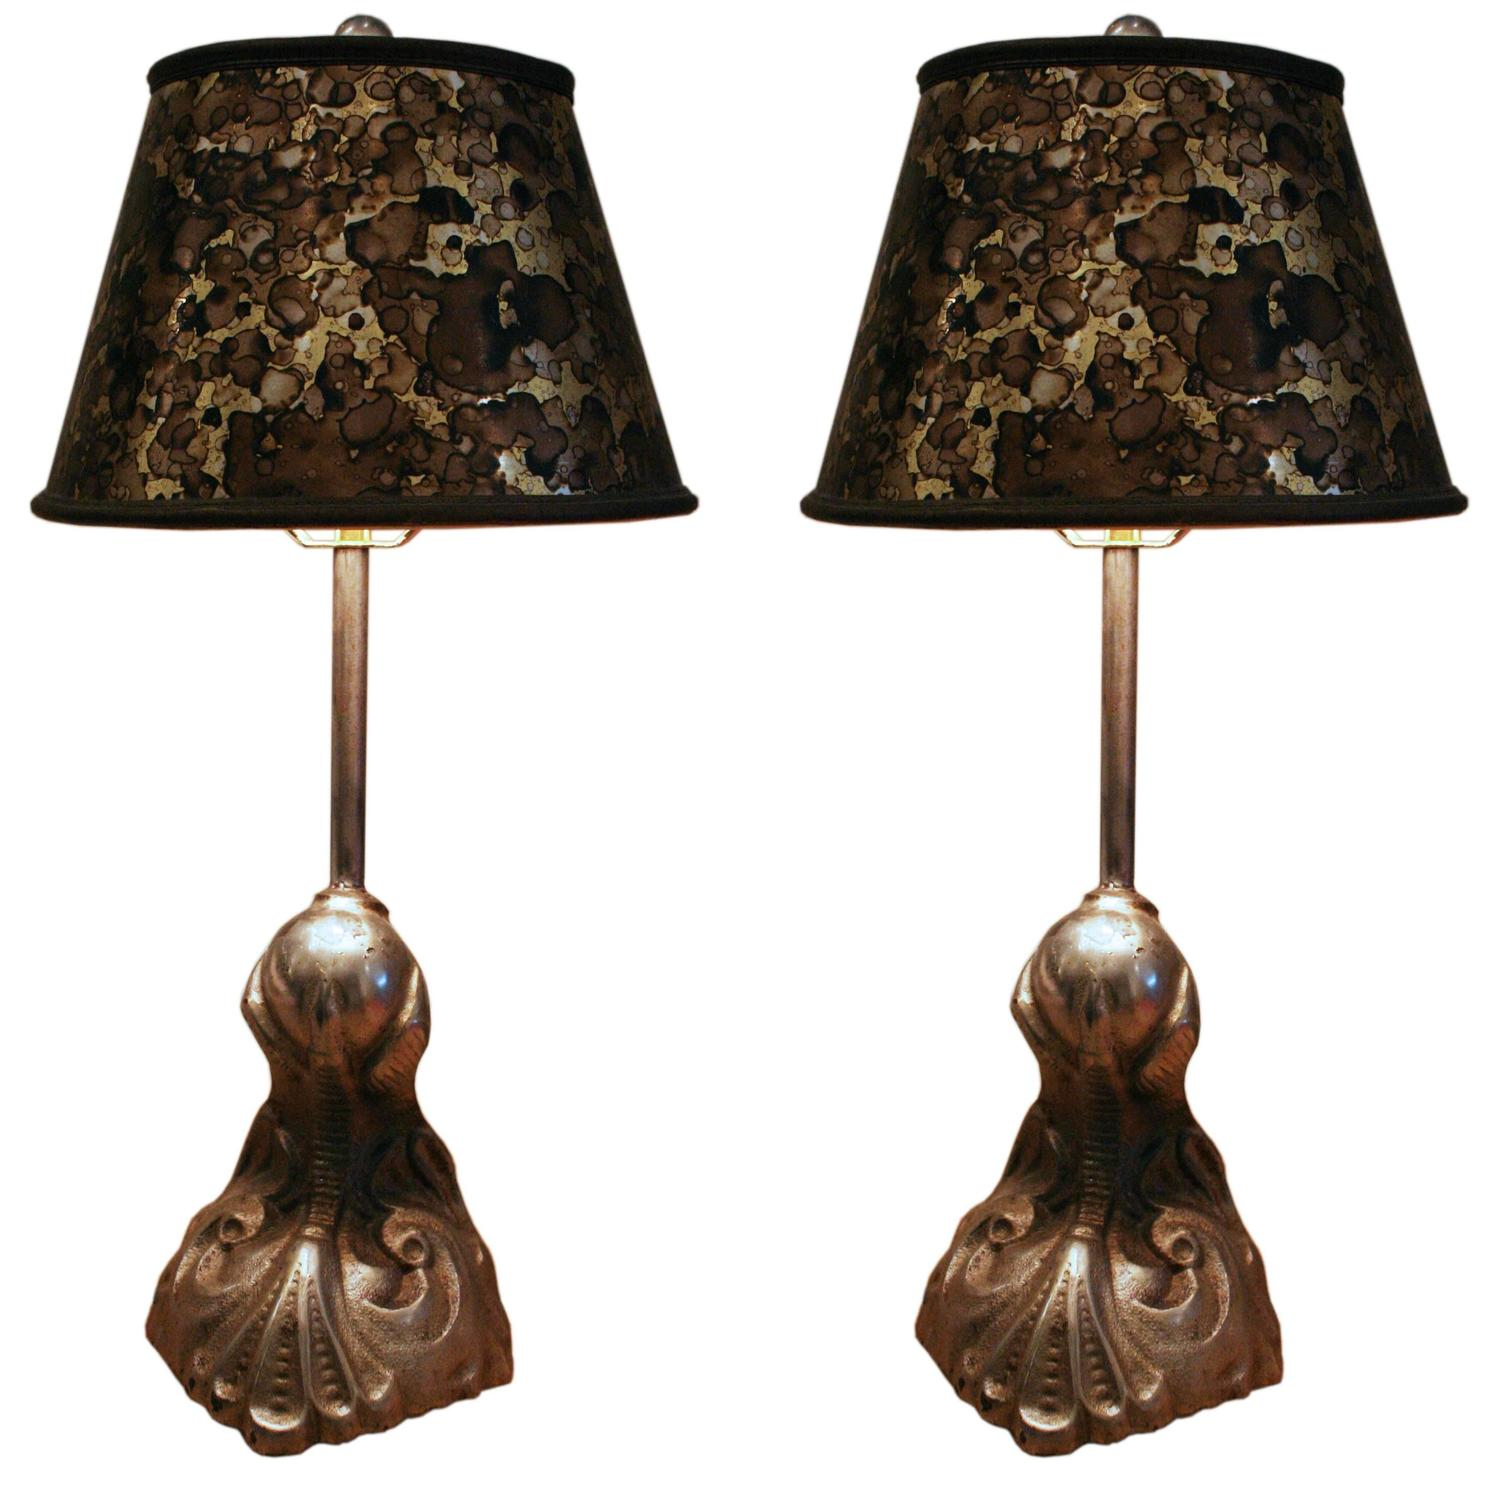 pair of late 19th century victorian table lamps for sale at 1stdibs. Black Bedroom Furniture Sets. Home Design Ideas